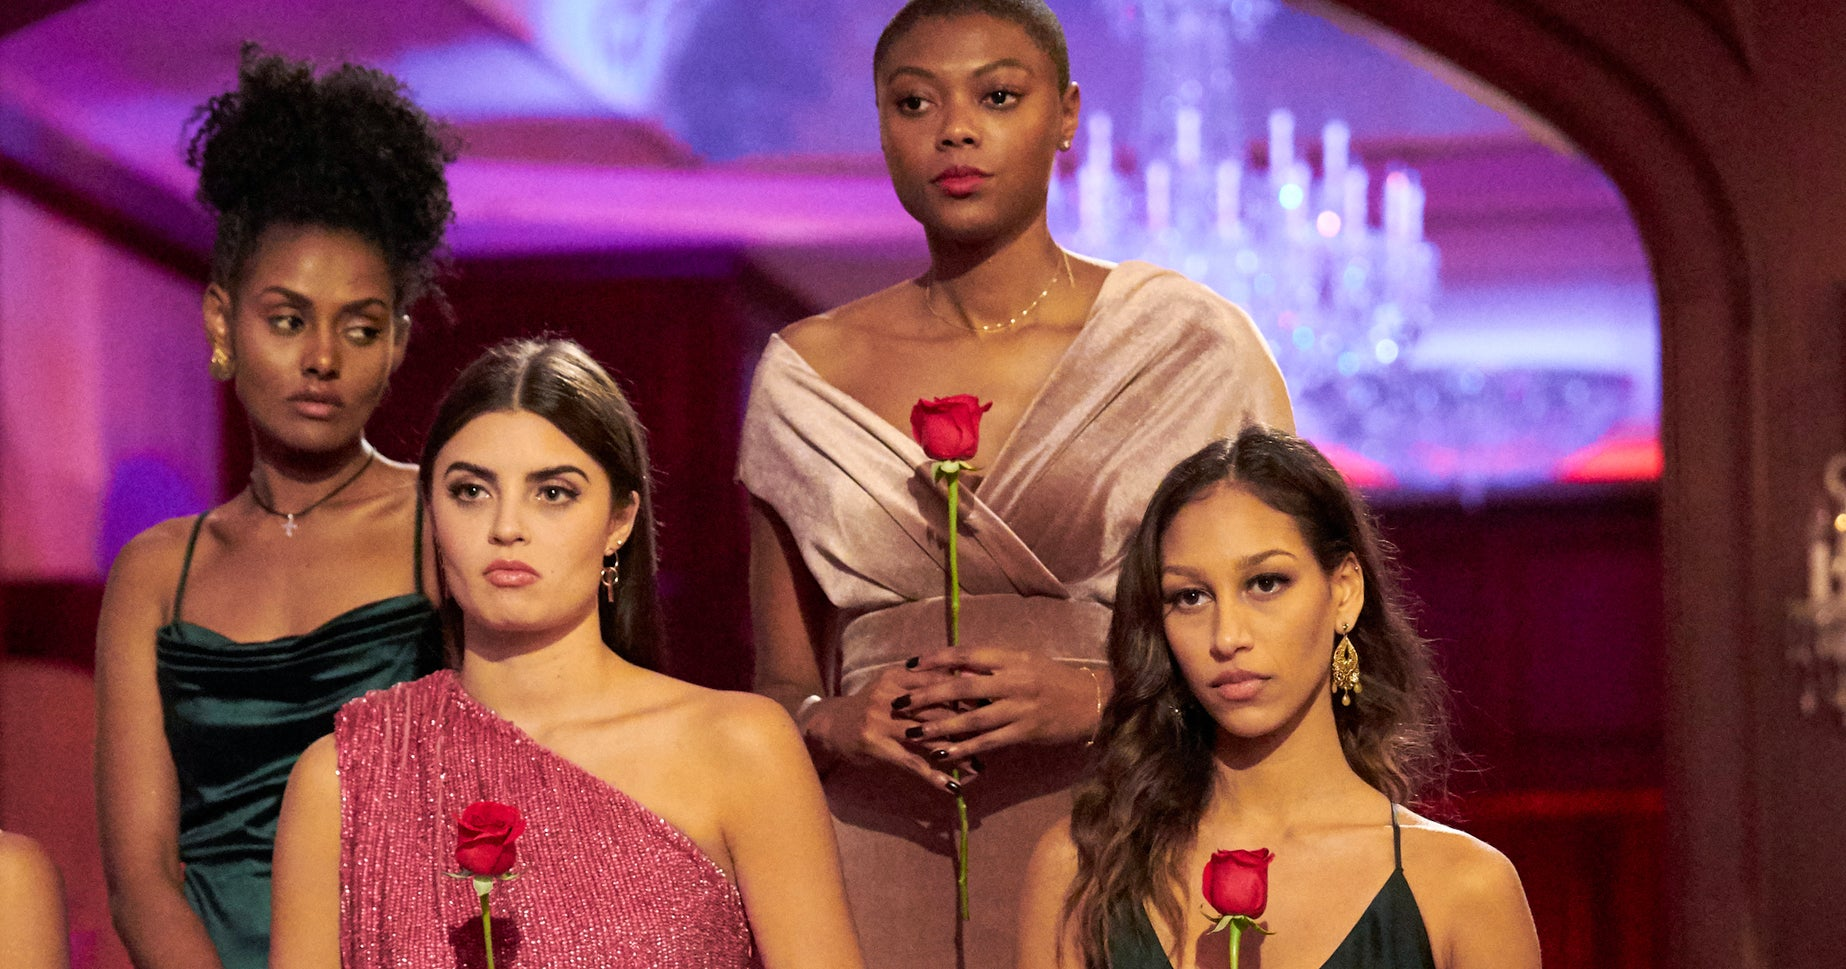 One Statement Changed The Bachelor Forever. This Is The Inside Story Of Its Reckoning